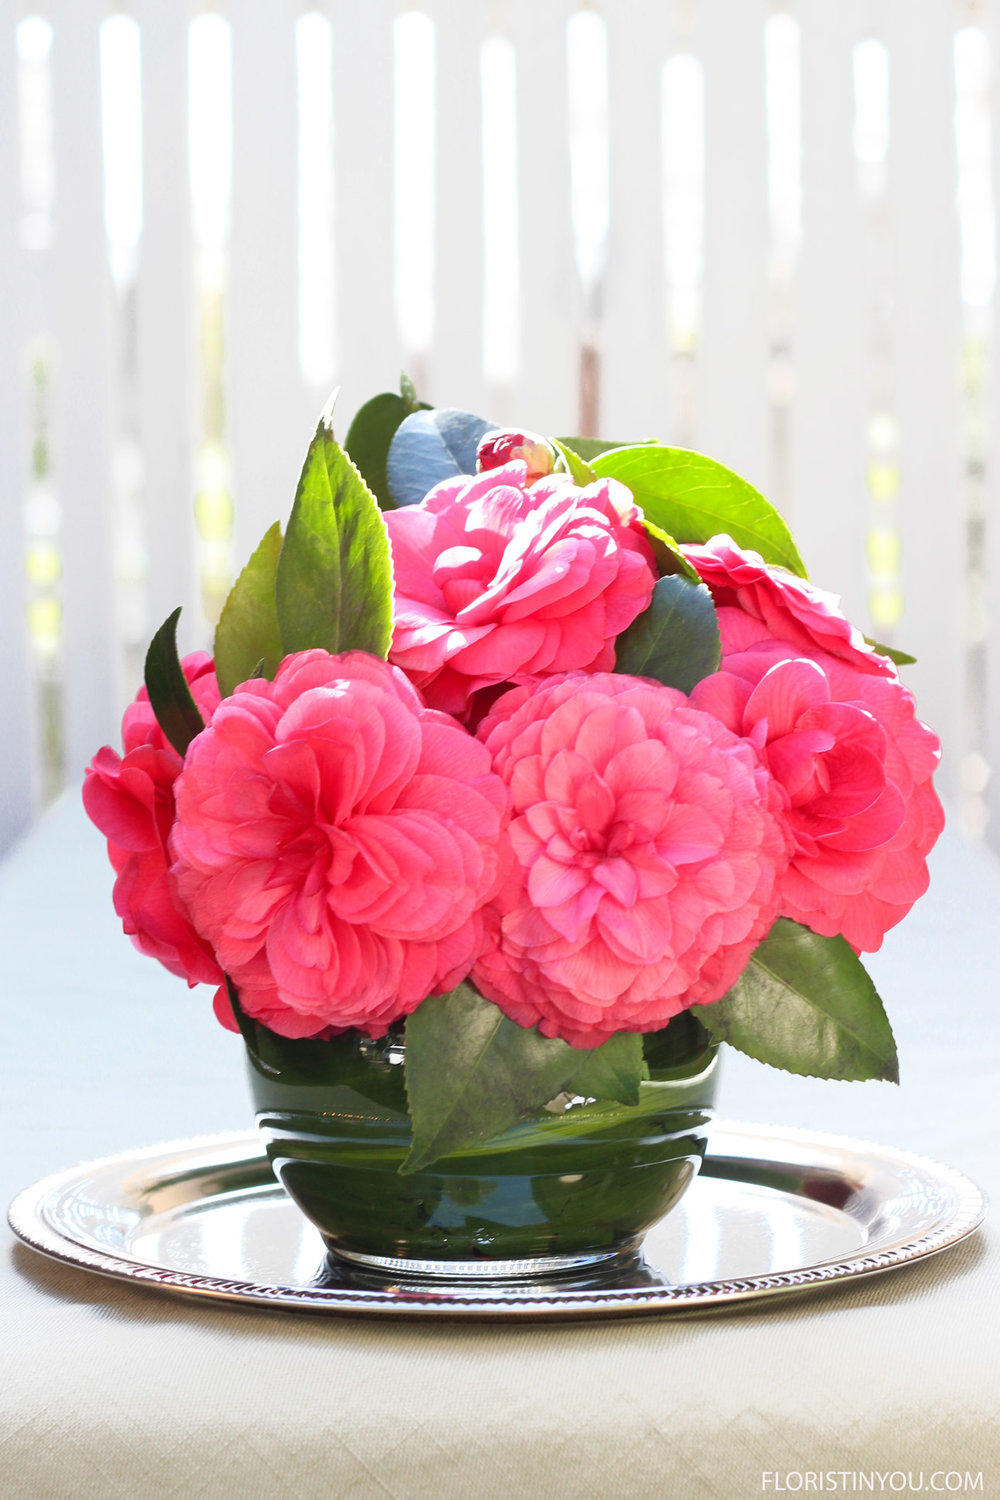 "Small Camellia Centerpiece                     Normal   0           false   false   false     EN-US   JA   X-NONE                                                                                                                                                                                                                                                                                                                                                                              /* Style Definitions */ table.MsoNormalTable 	{mso-style-name:""Table Normal""; 	mso-tstyle-rowband-size:0; 	mso-tstyle-colband-size:0; 	mso-style-noshow:yes; 	mso-style-priority:99; 	mso-style-parent:""""; 	mso-padding-alt:0in 5.4pt 0in 5.4pt; 	mso-para-margin:0in; 	mso-para-margin-bottom:.0001pt; 	mso-pagination:widow-orphan; 	font-size:12.0pt; 	font-family:Cambria; 	mso-ascii-font-family:Cambria; 	mso-ascii-theme-font:minor-latin; 	mso-hansi-font-family:Cambria; 	mso-hansi-theme-font:minor-latin;}"